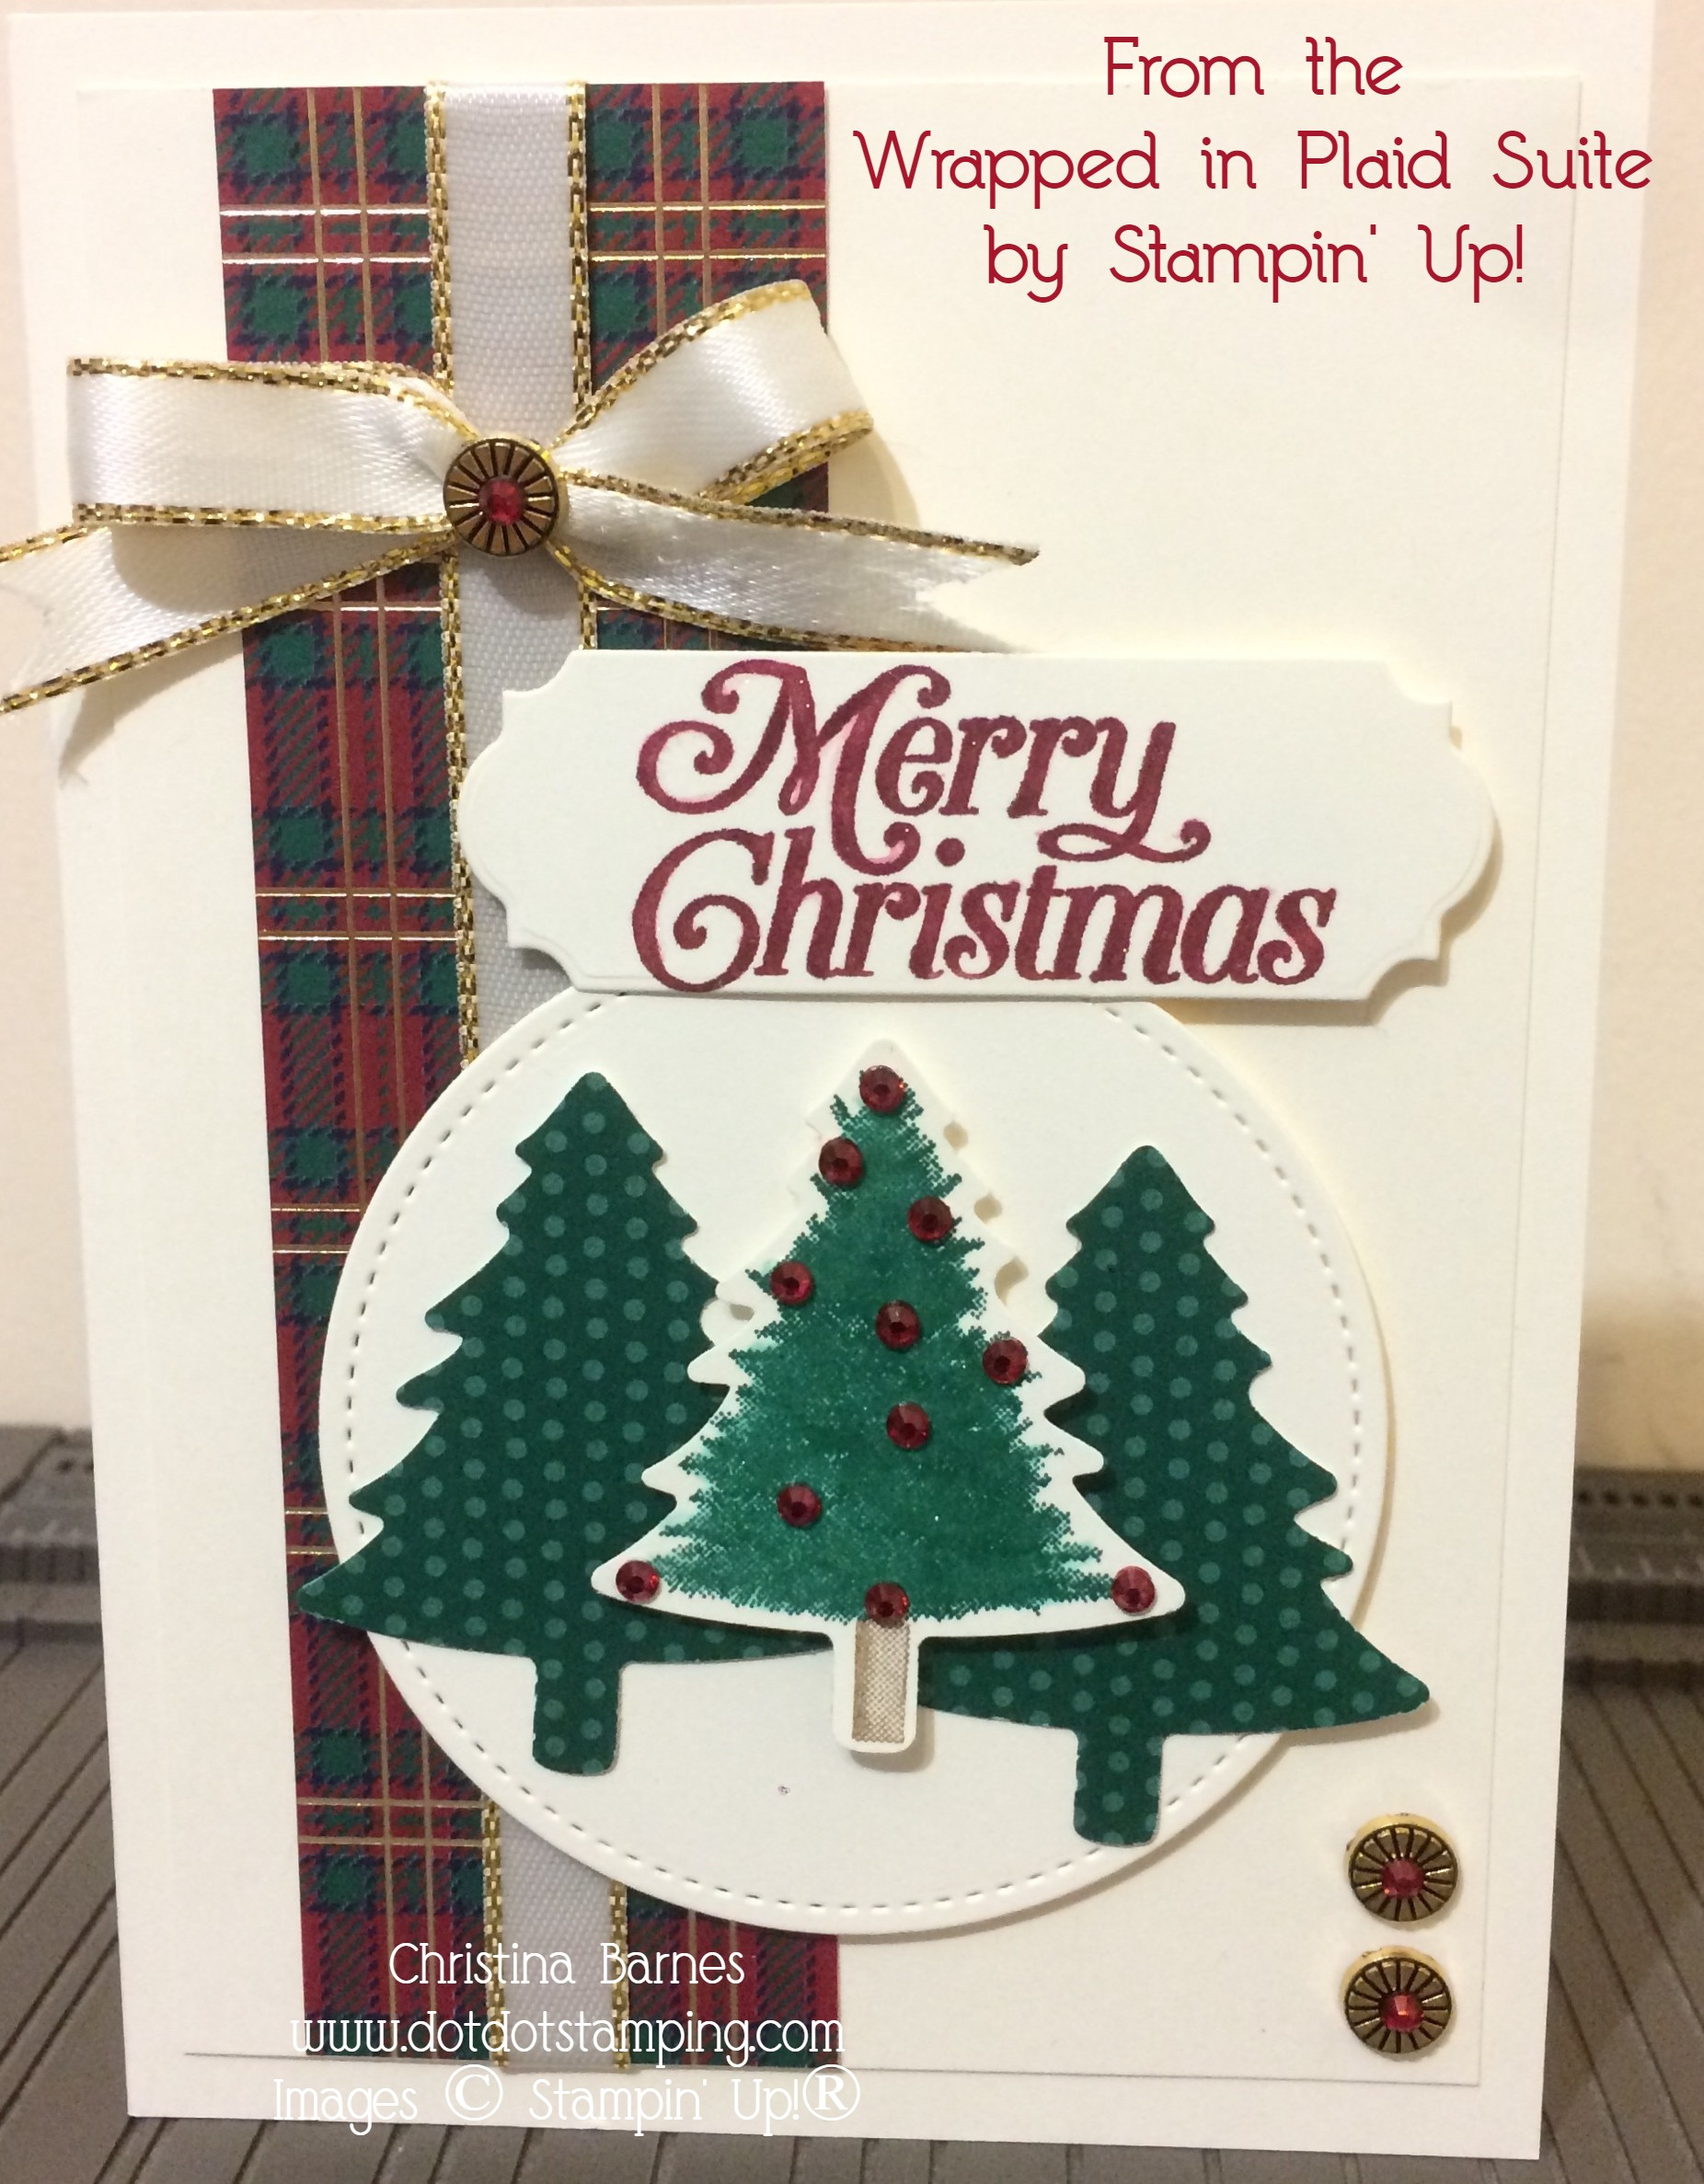 Christmas Card Wrapped in Plaid by Christina Barnes Dot Dot Stamping 2019 Holiday Catalogue